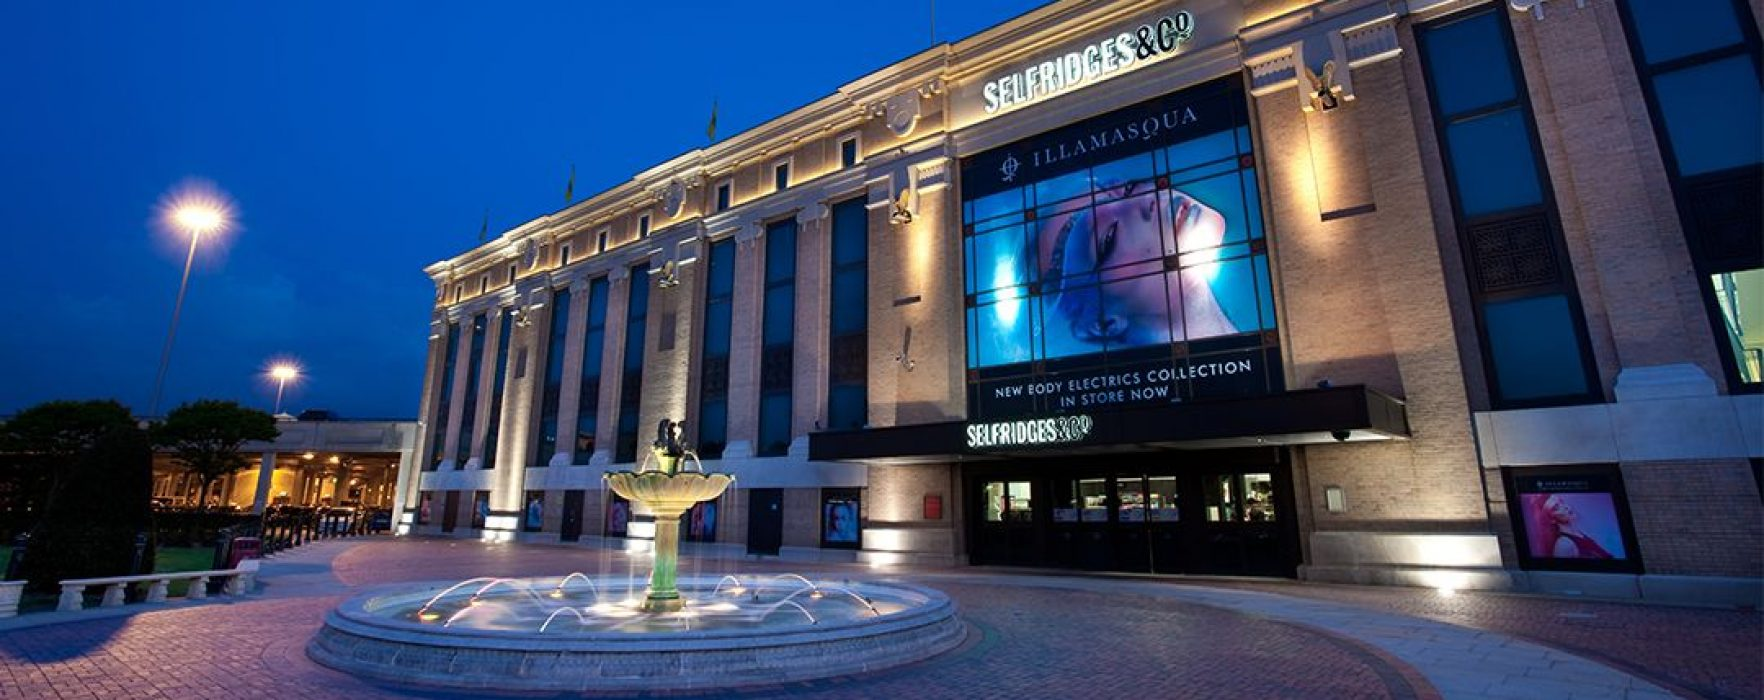 Selfridges Trafford presents five days of family fun with its own festival